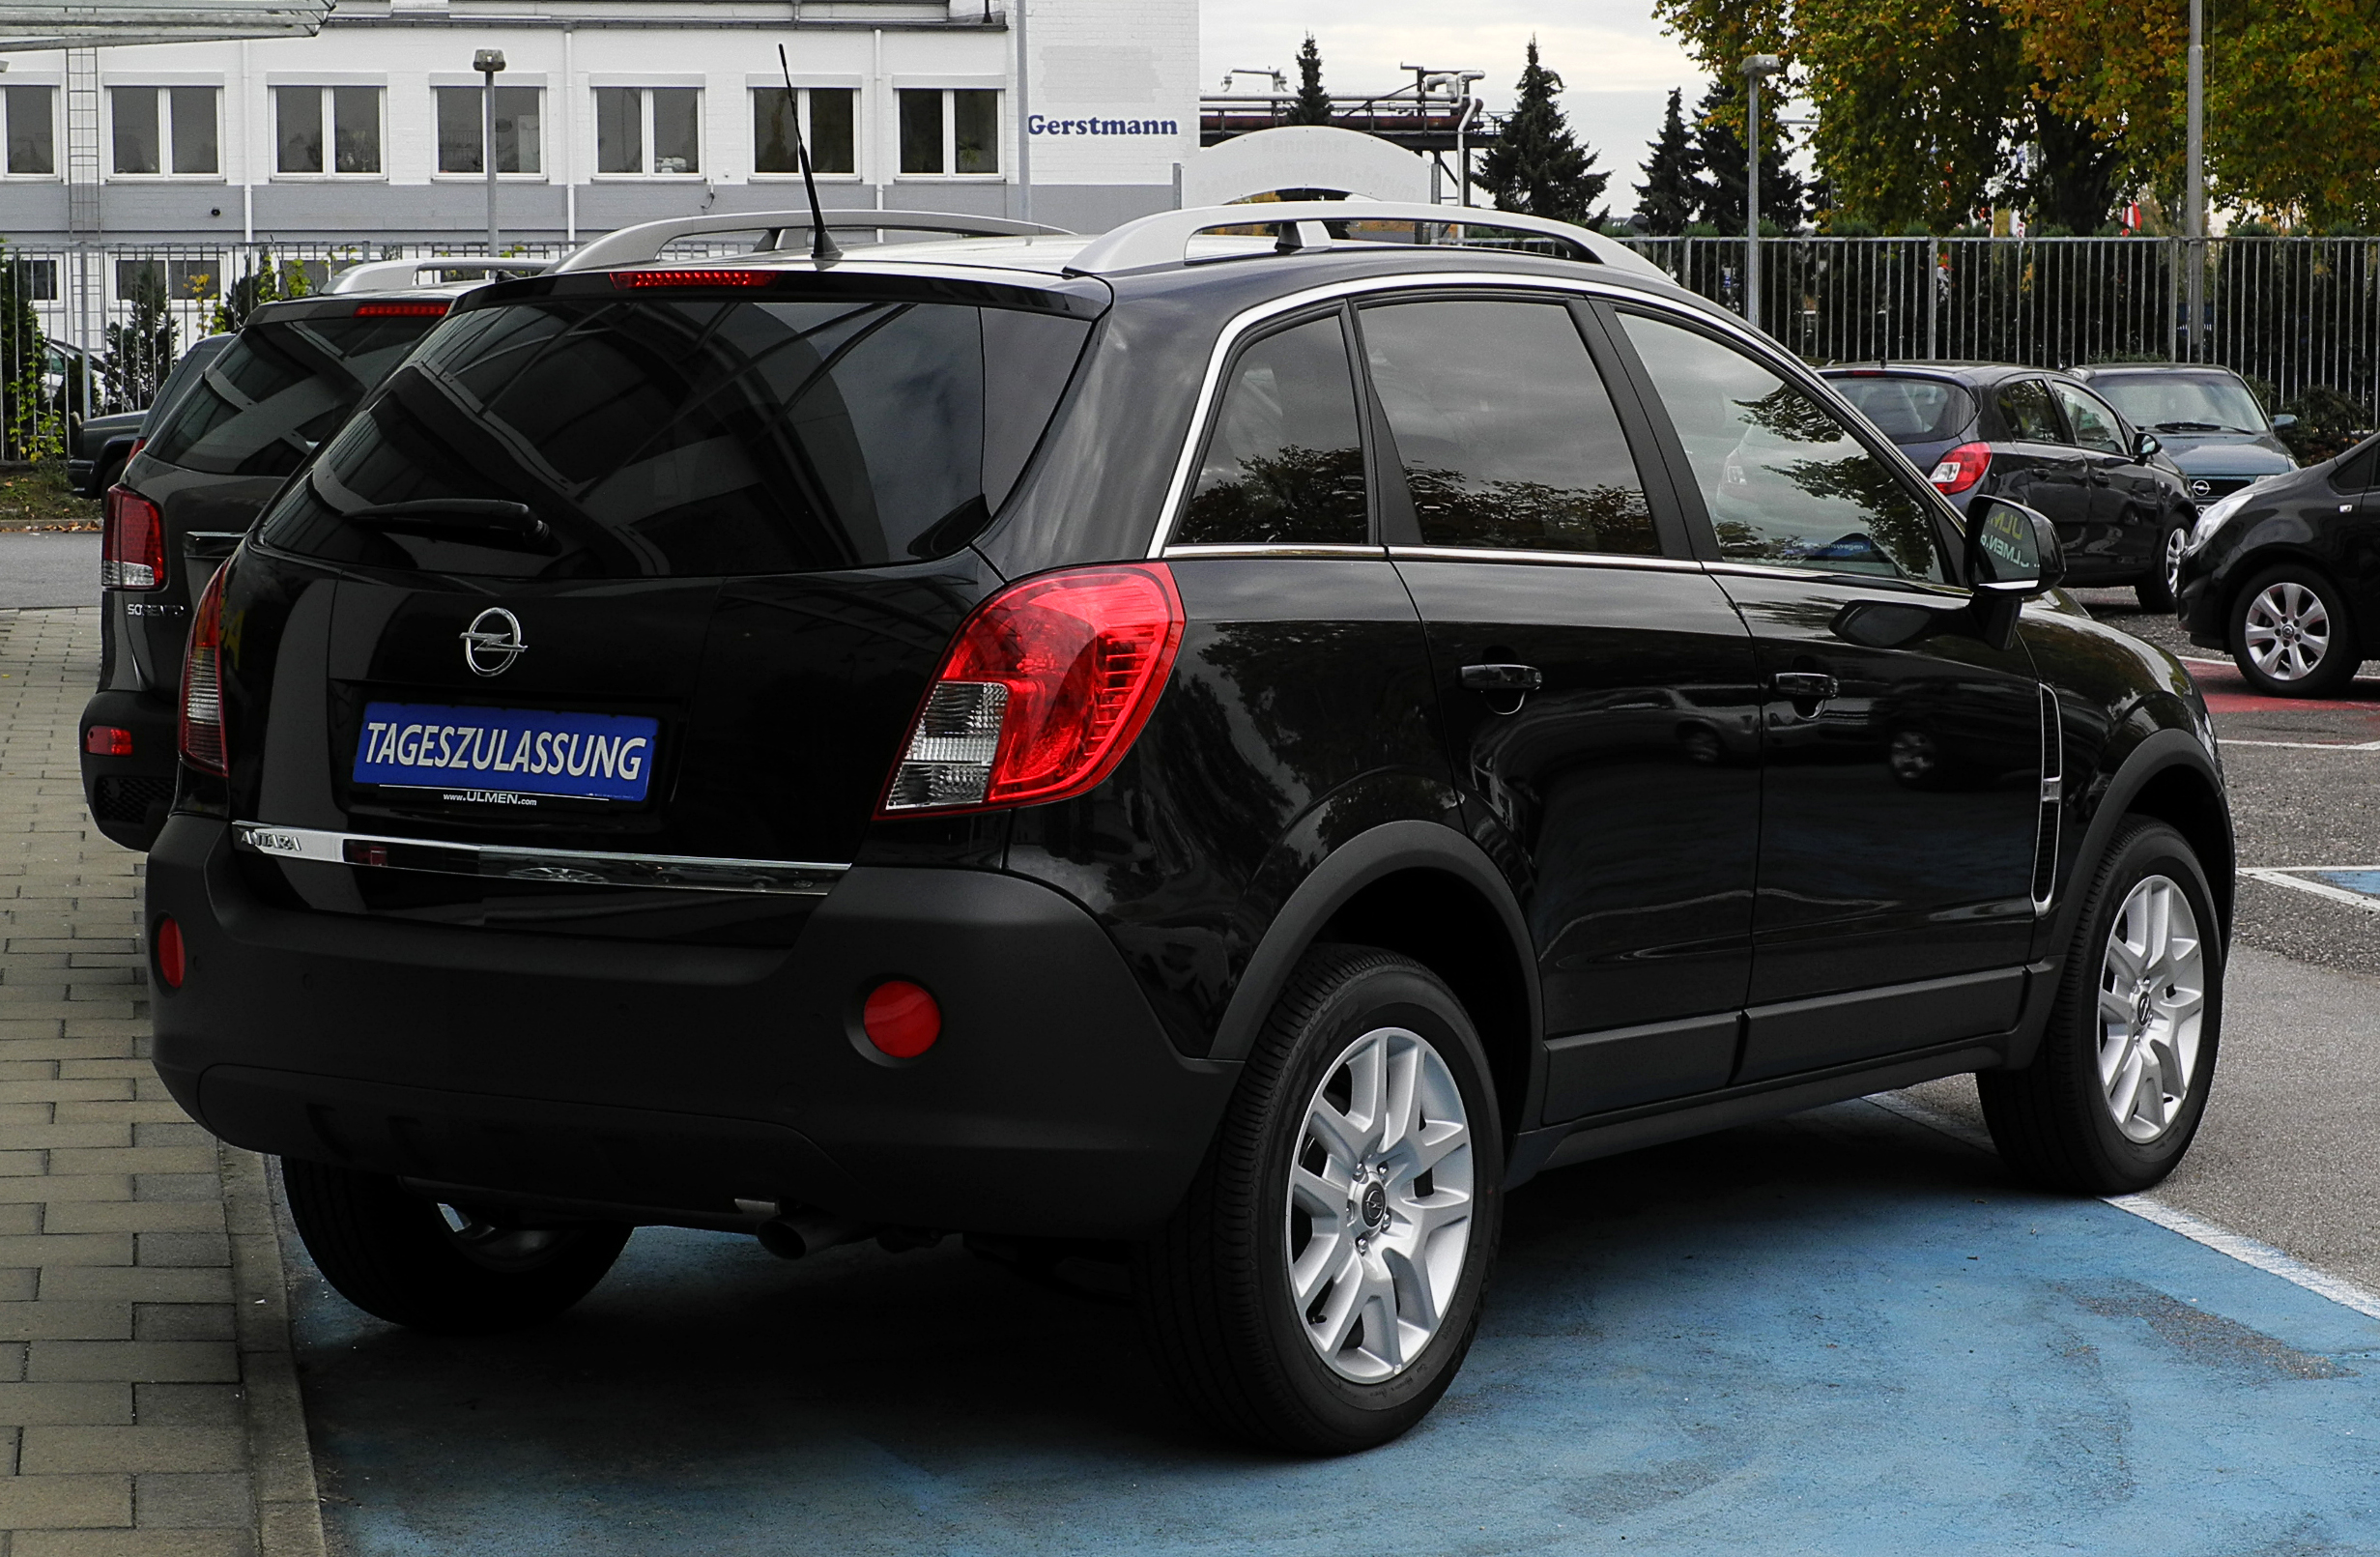 2013 Opel Antara   pictures, information and specs - Auto-Database.com